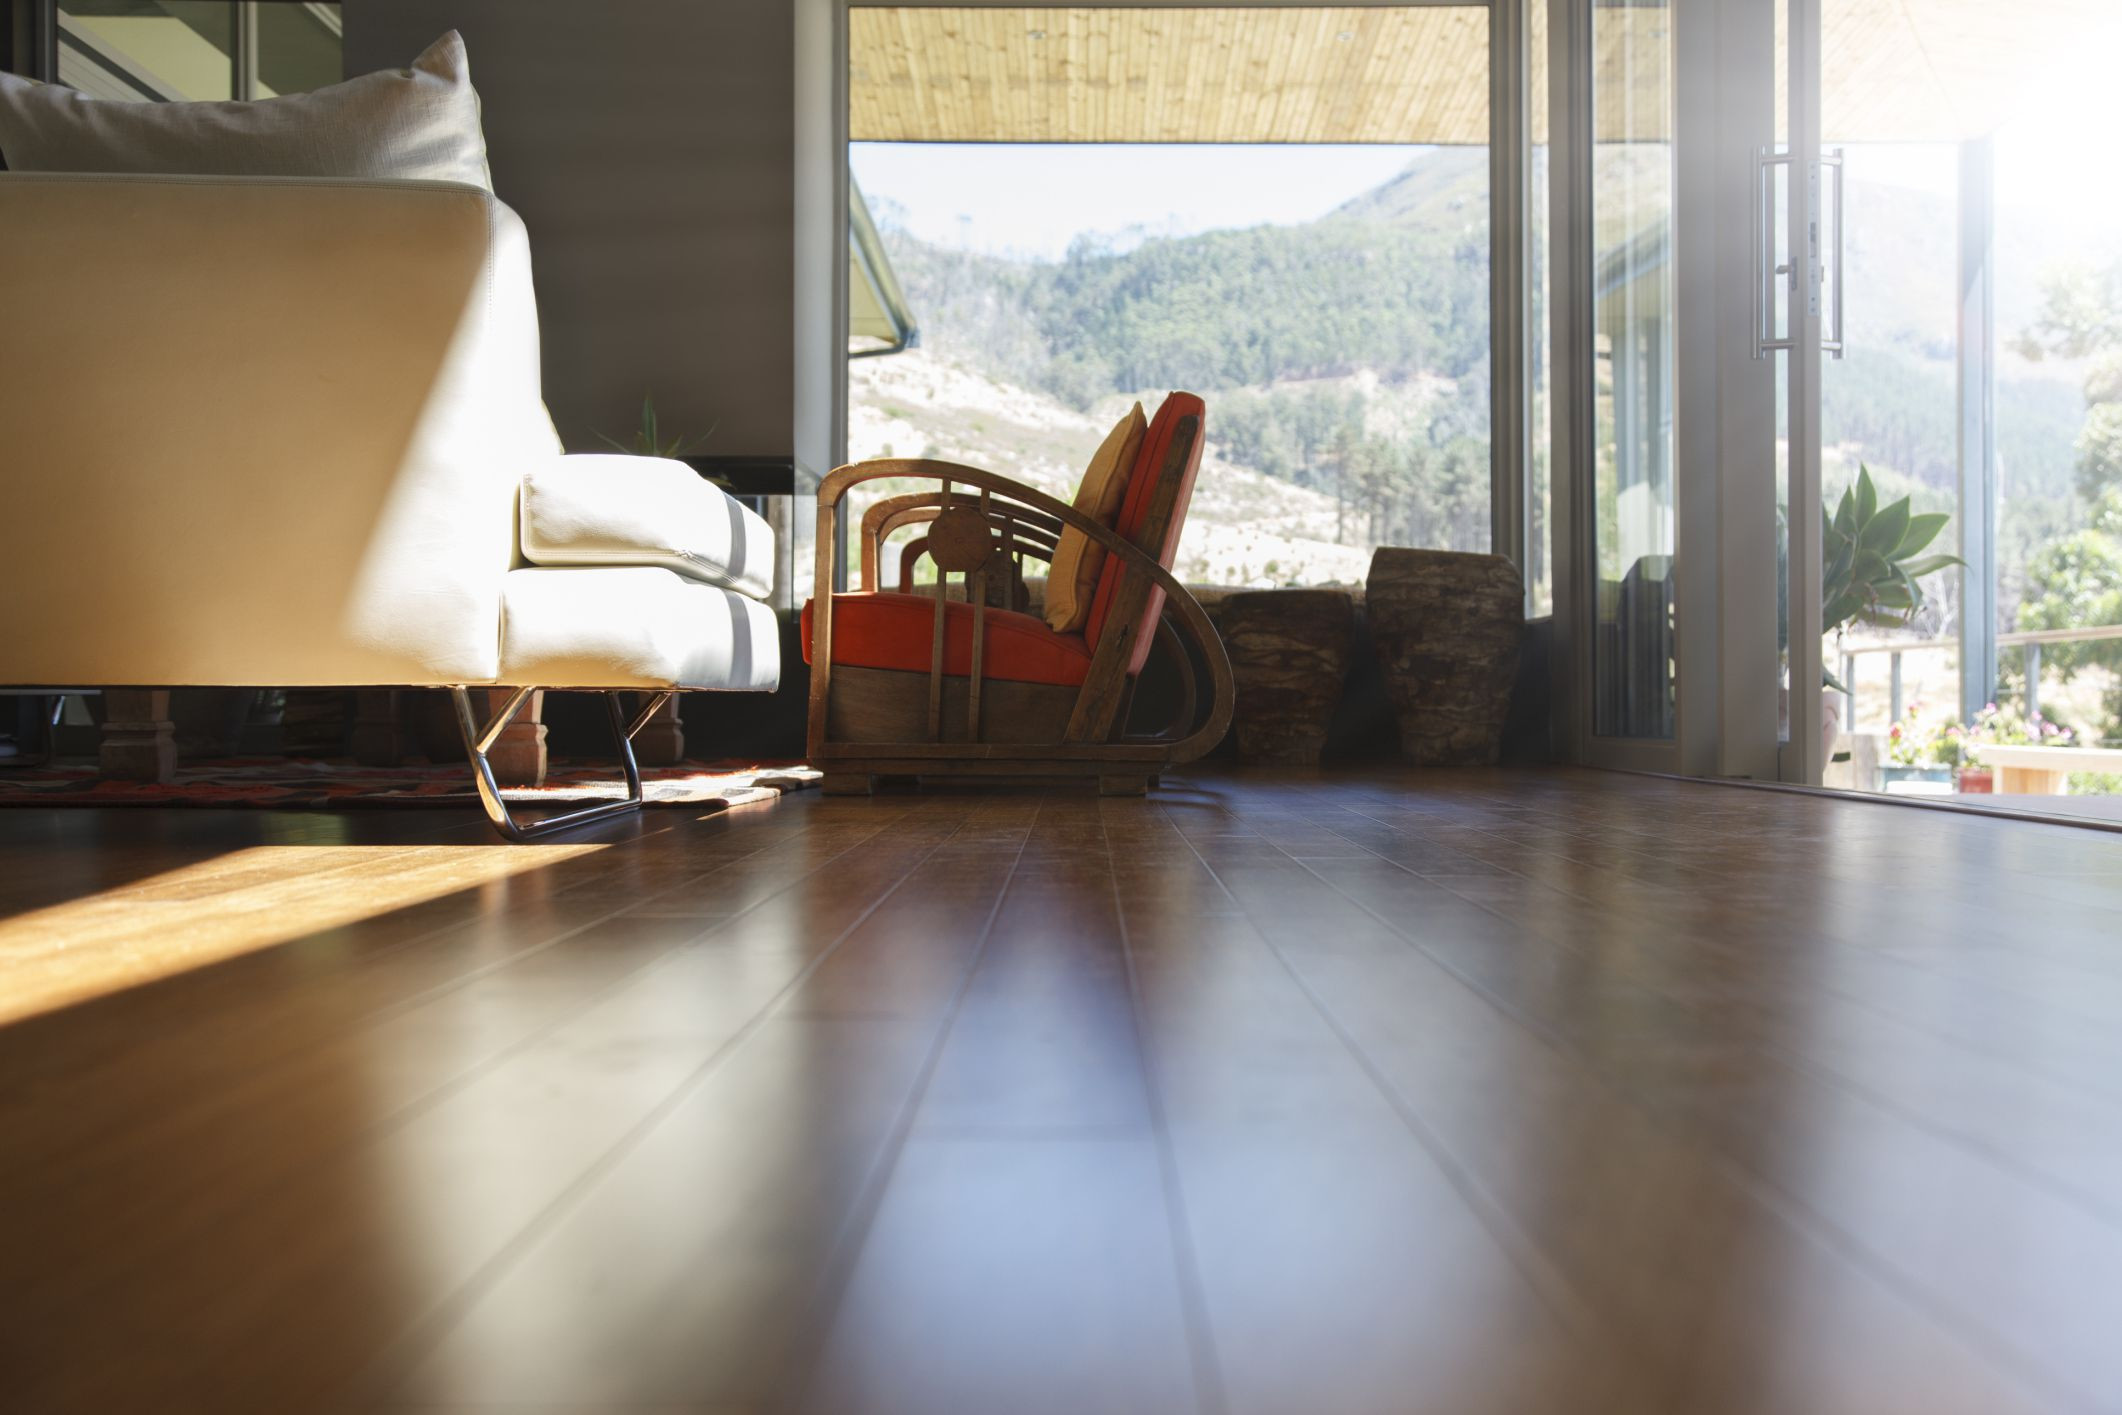 cost to install hardwood floors on concrete of floating floors basics types and pros and cons with regard to exotic hardwood flooring 525439899 56a49d3a3df78cf77283453d